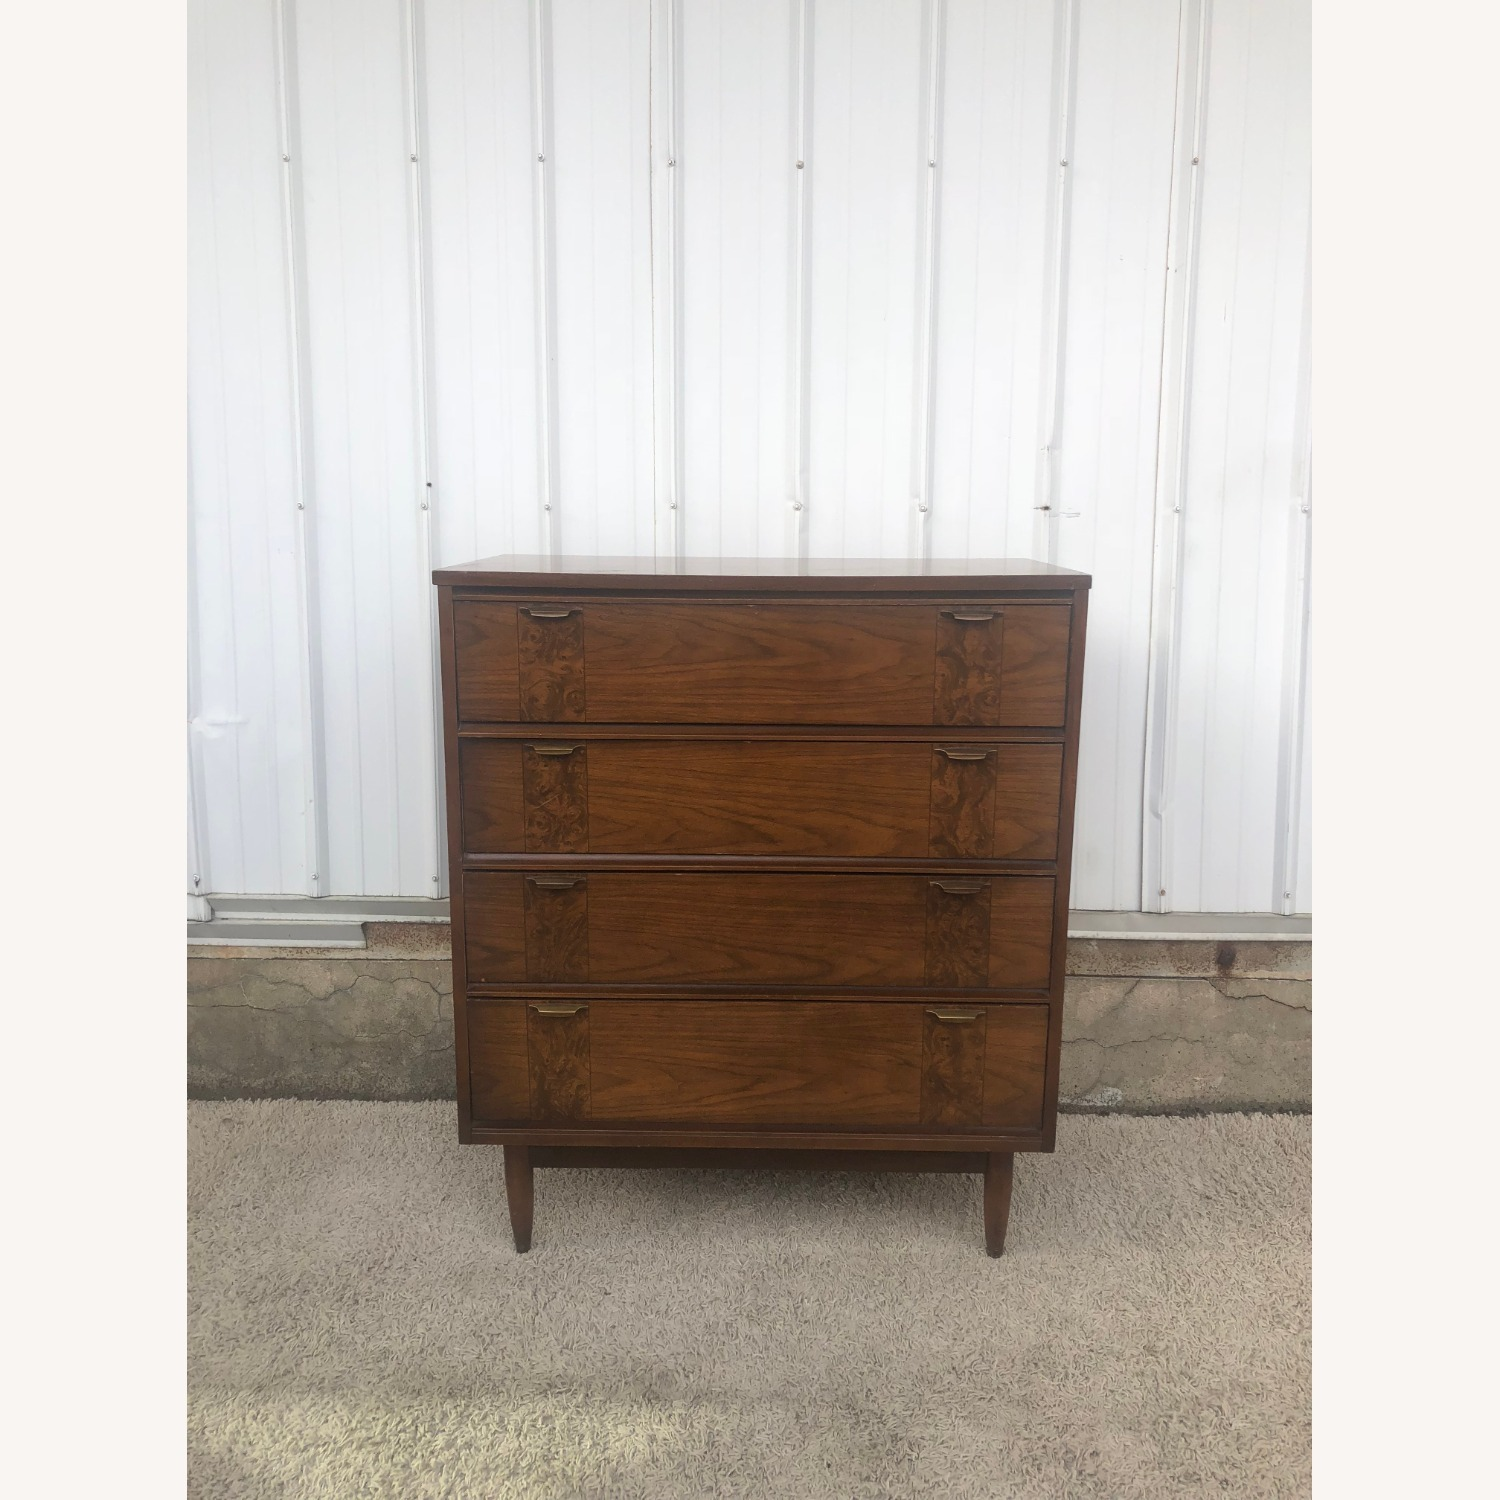 Mid Century Four Drawer Dresser with Burlwood - image-4